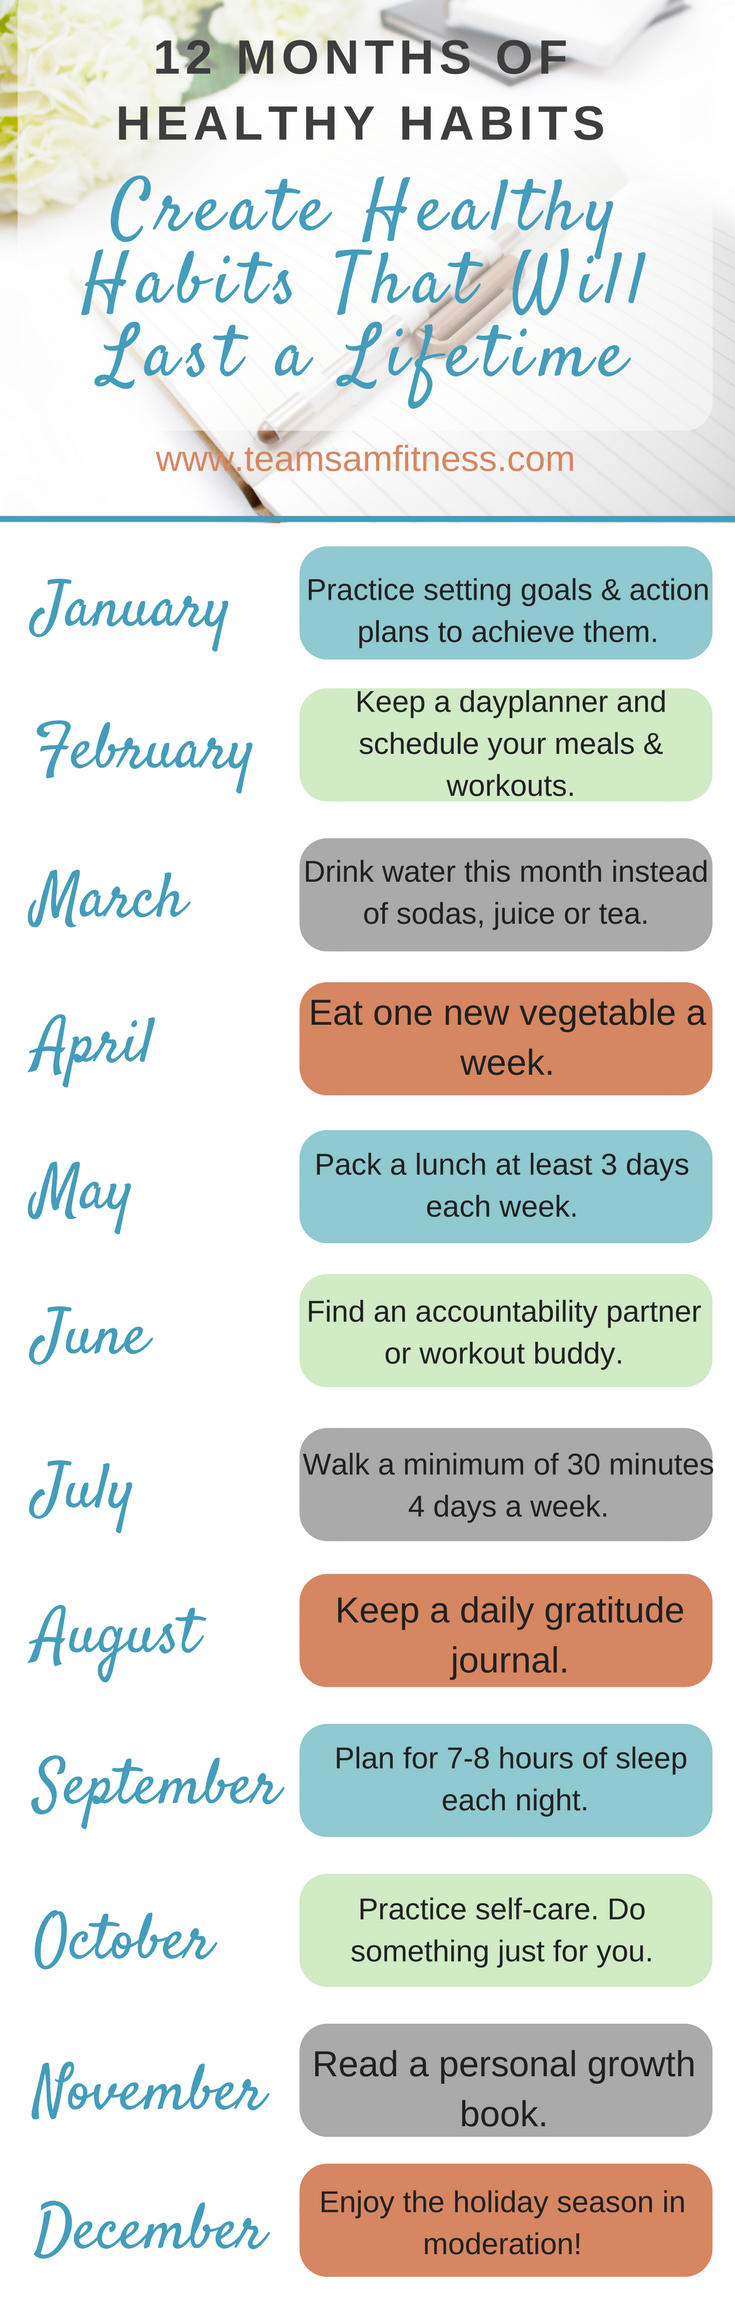 12 months of creating healthy habits that will last a lifetime.